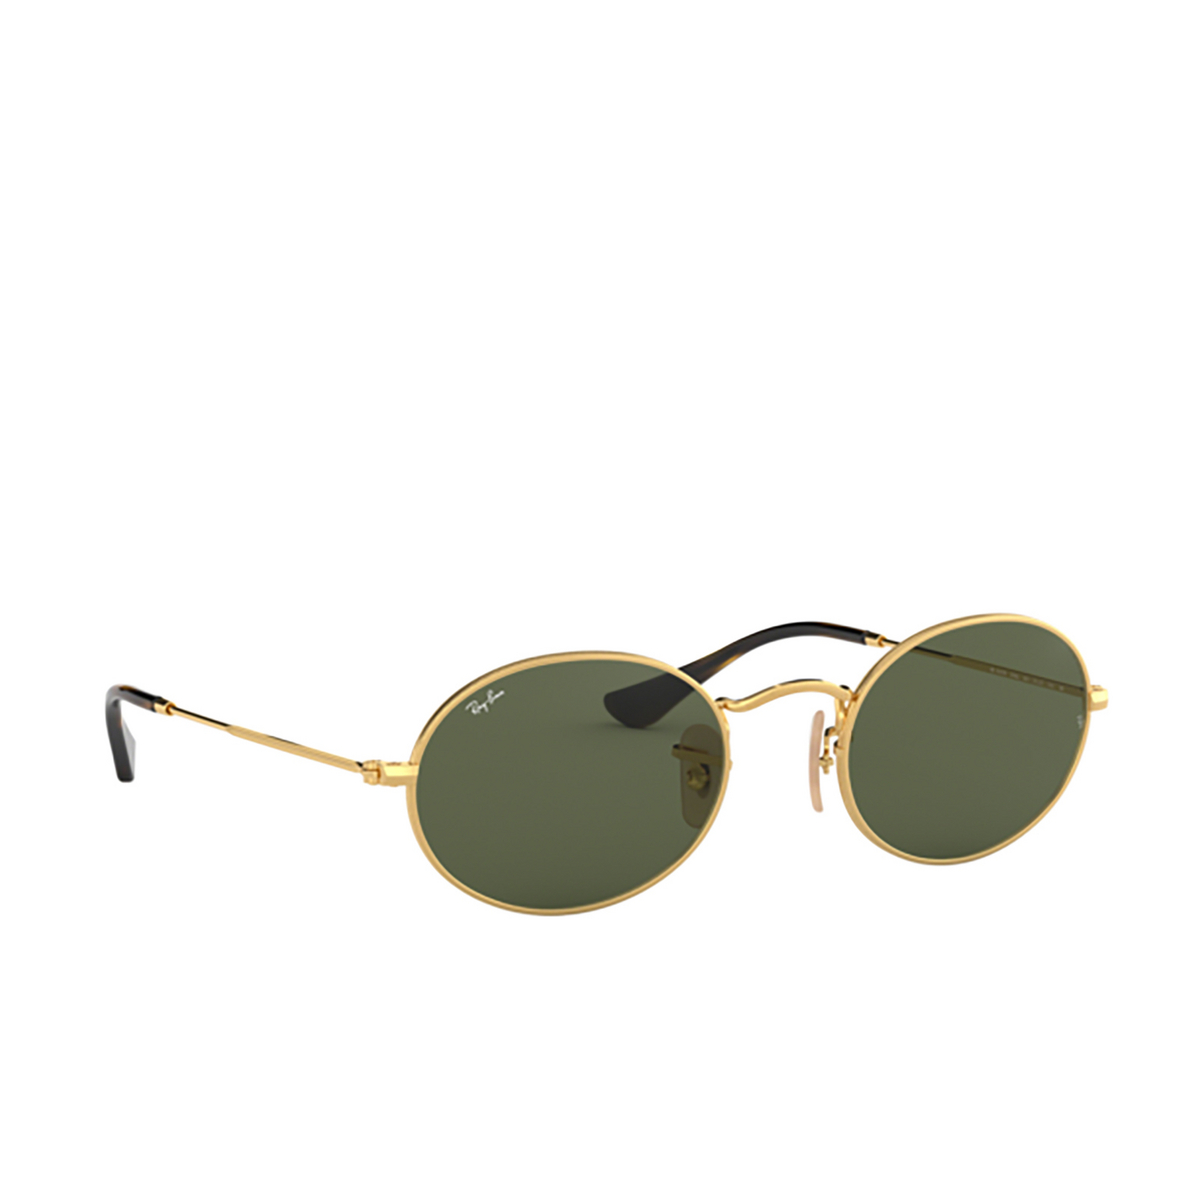 ray-ban-oval-rb3547n-001 (1)